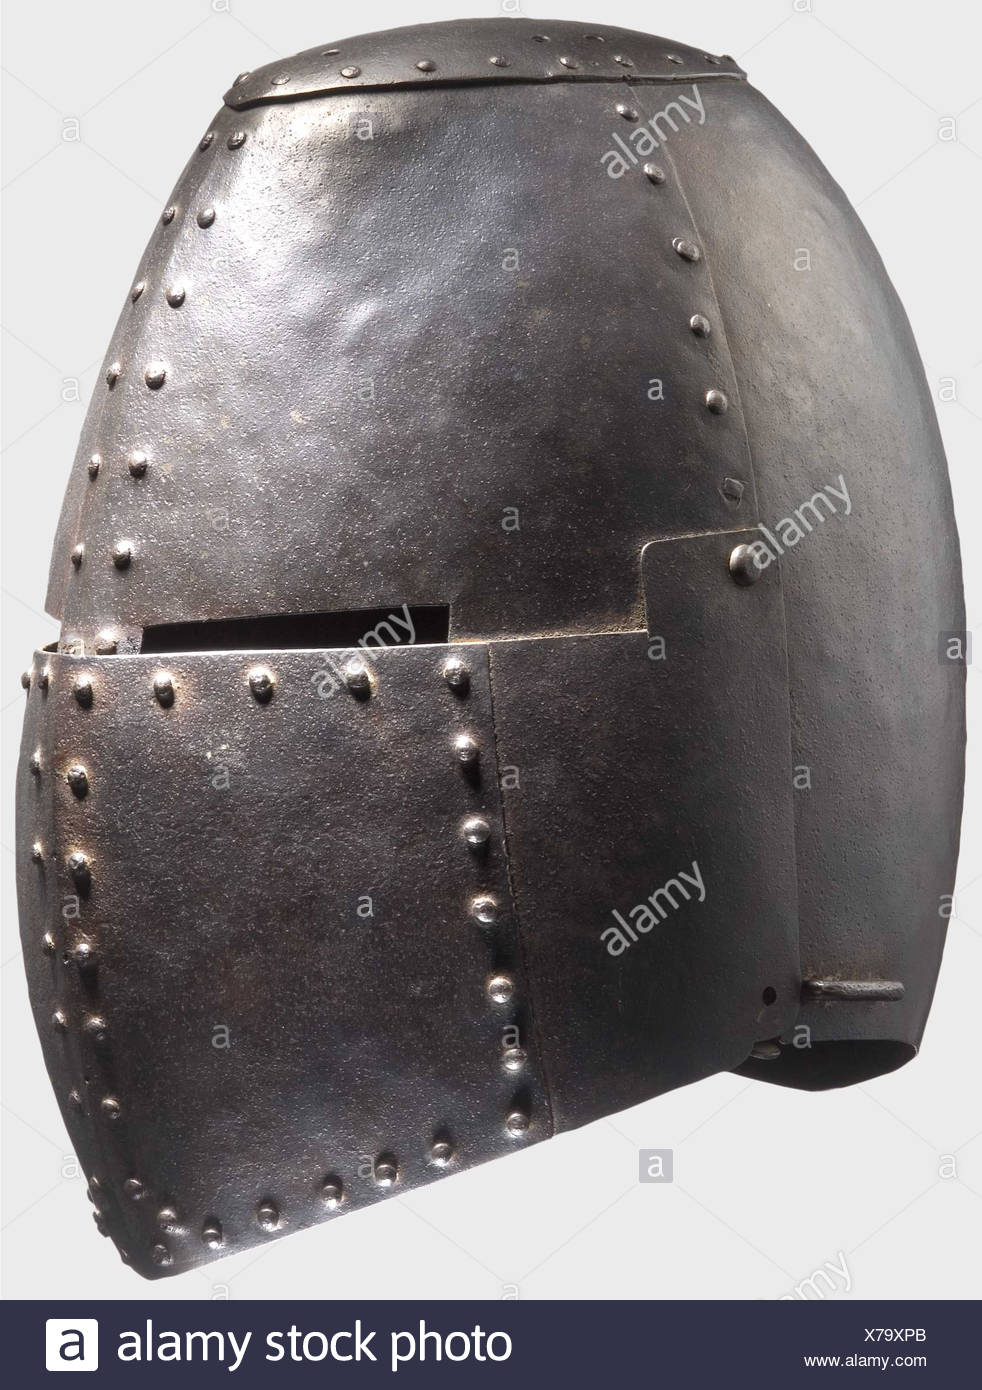 A great helm, Historismus Period in the style of the 1st